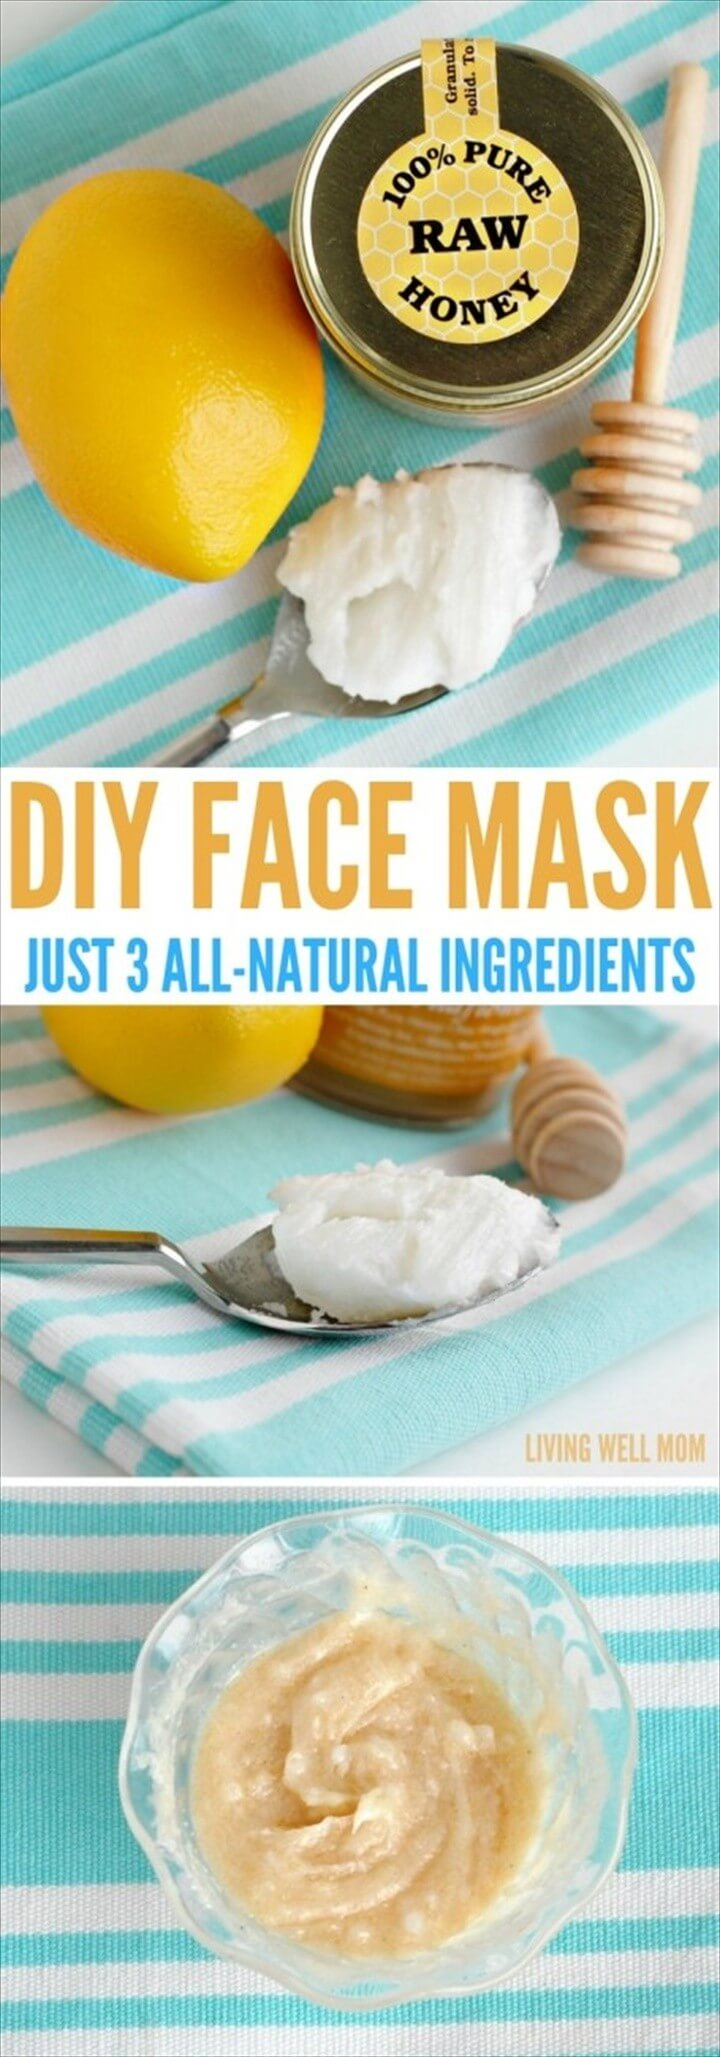 DIY Face Mask Just 3 All Natural Ingredients Collage